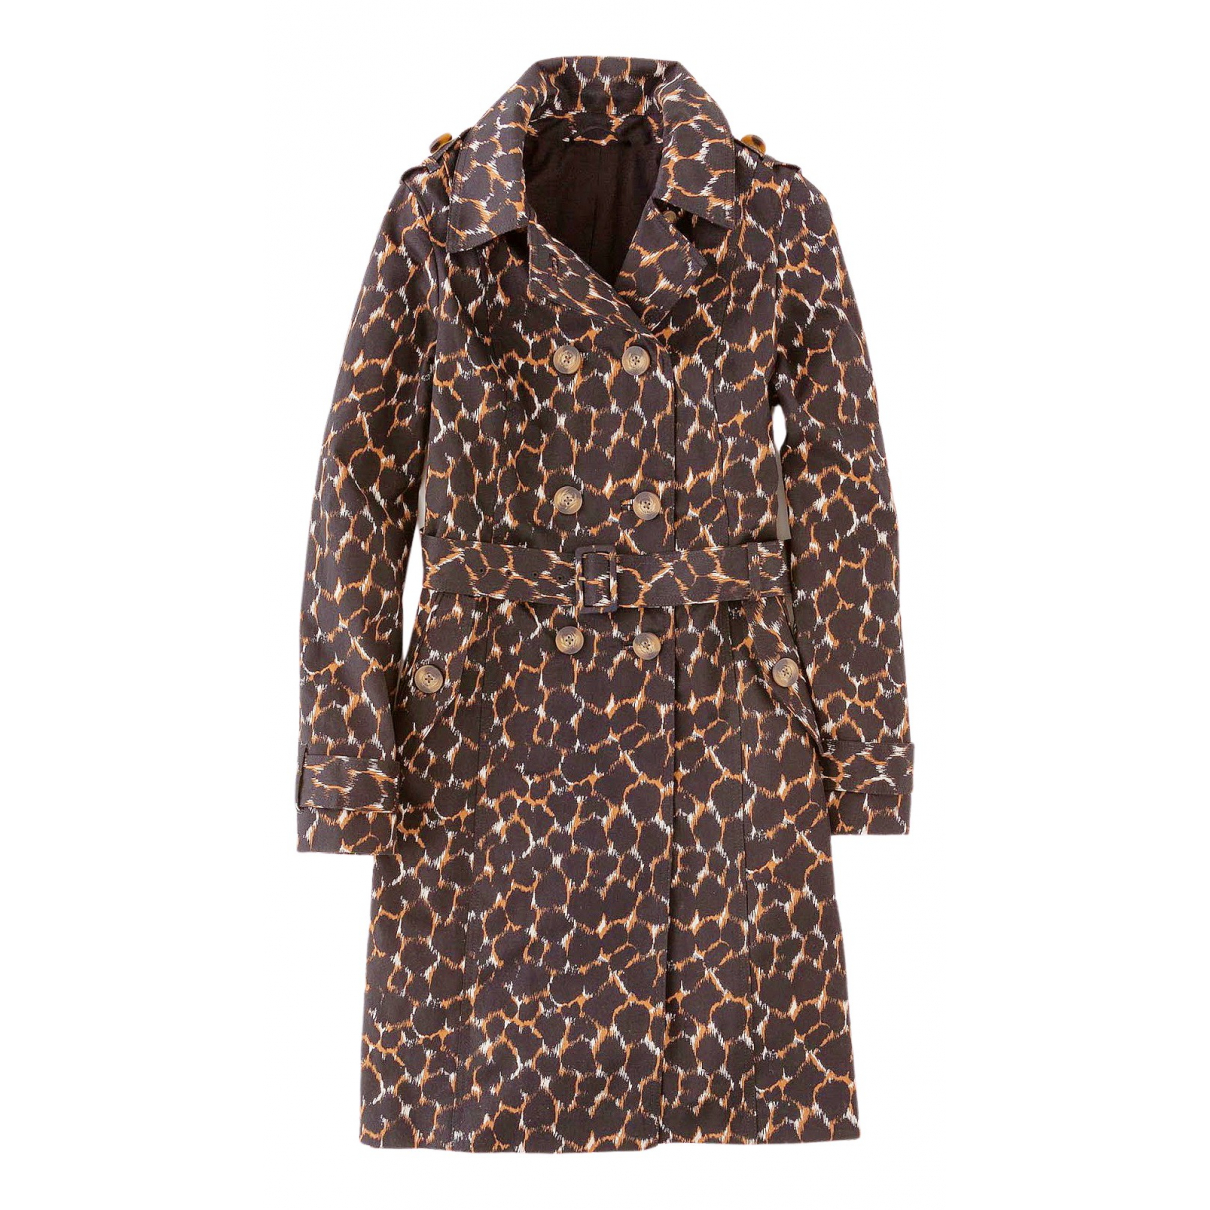 Boden \N Cotton Trench coat for Women 12 UK